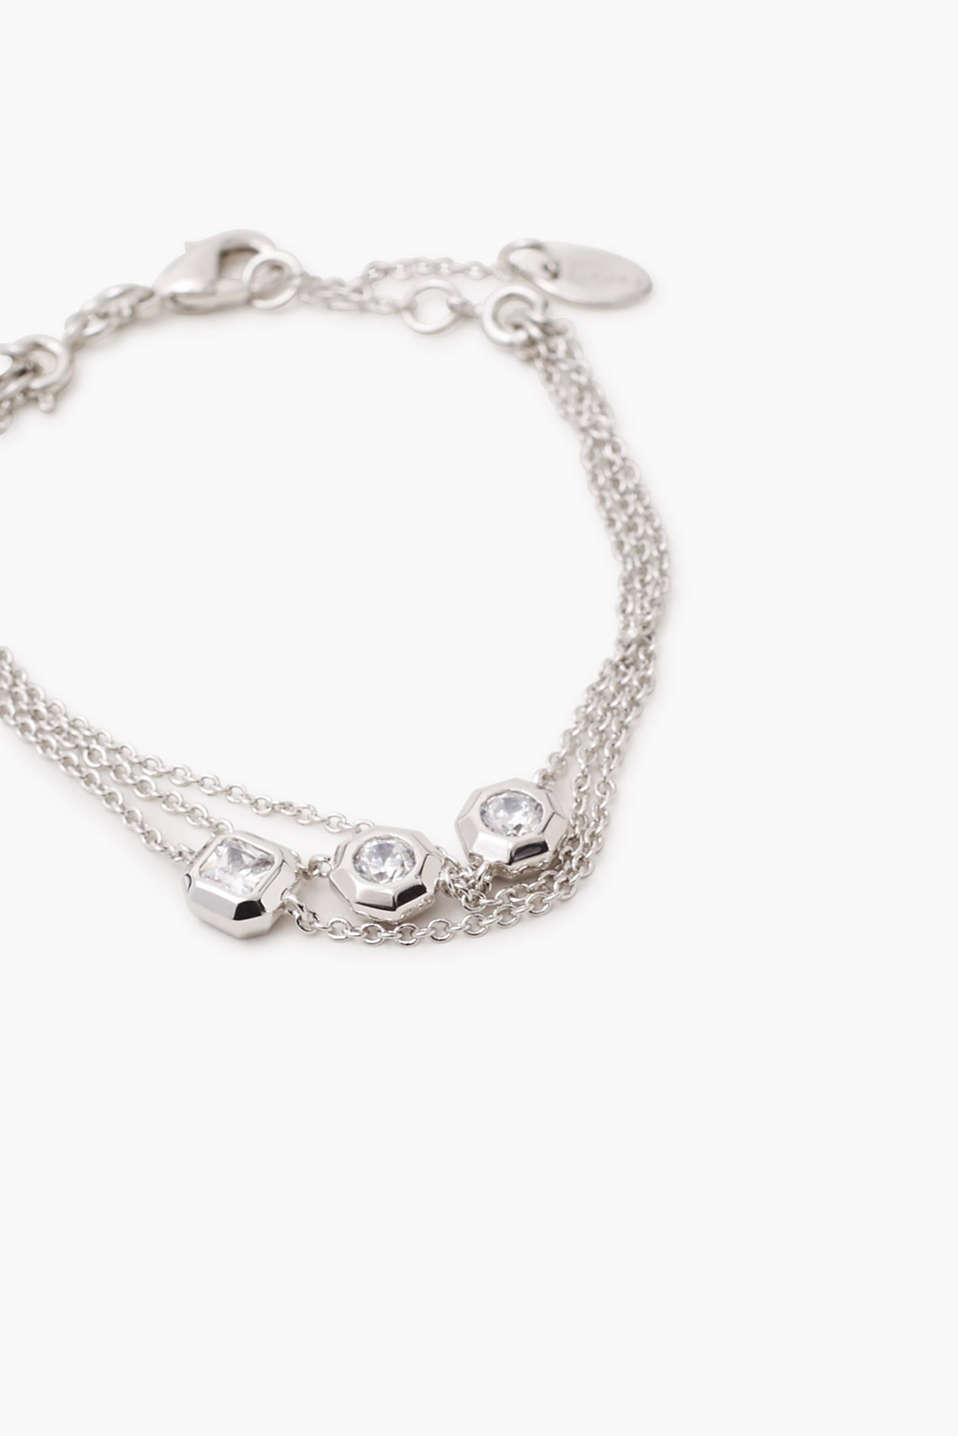 Three-strand bracelet in metal / zirconia